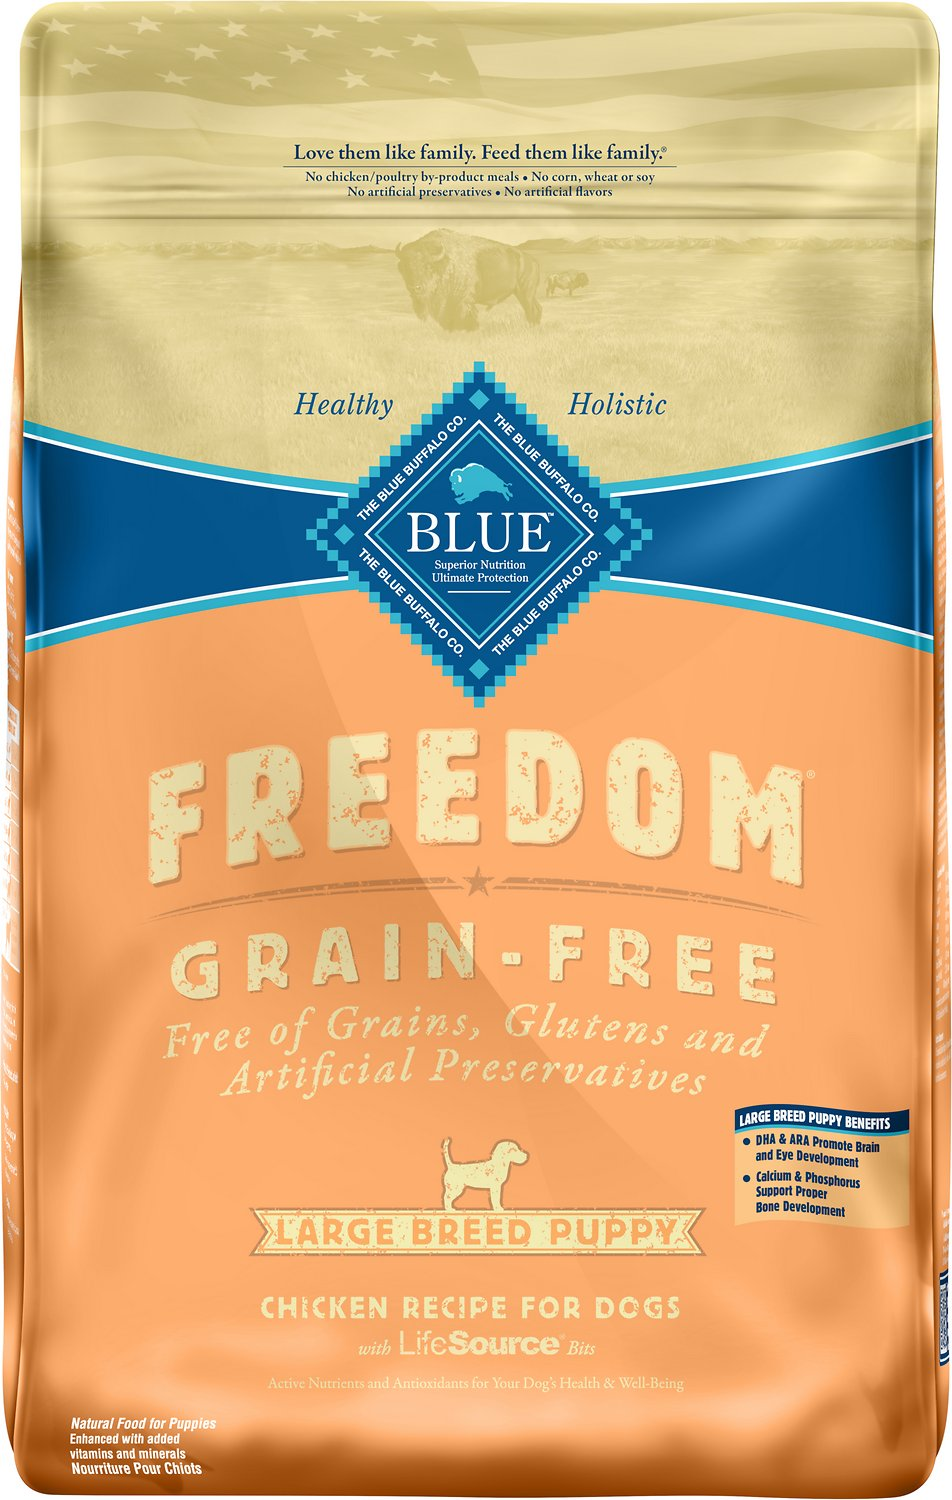 Blue Buffalo Freedom Large Breed Puppy Chicken Recipe Grain-Free Dry Dog Food, 24-lb bag (Weights: 24.0 pounds) Image